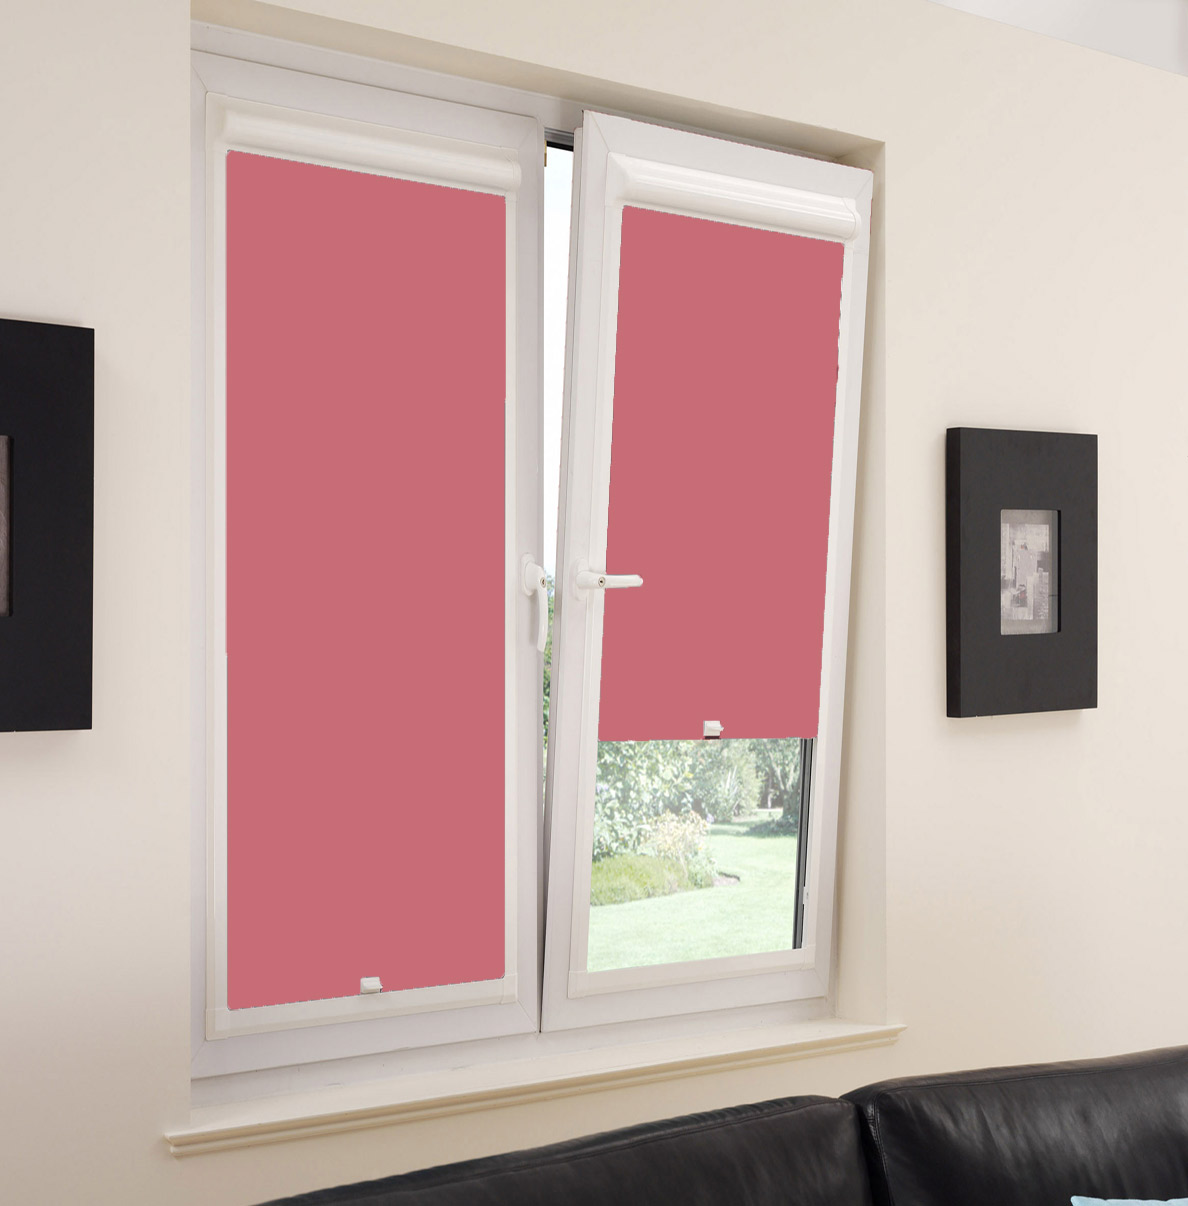 Bathroom window blinds - Recommended Bathroom Perfect Fit Roller Blinds Close Carnival 15 Bonbon